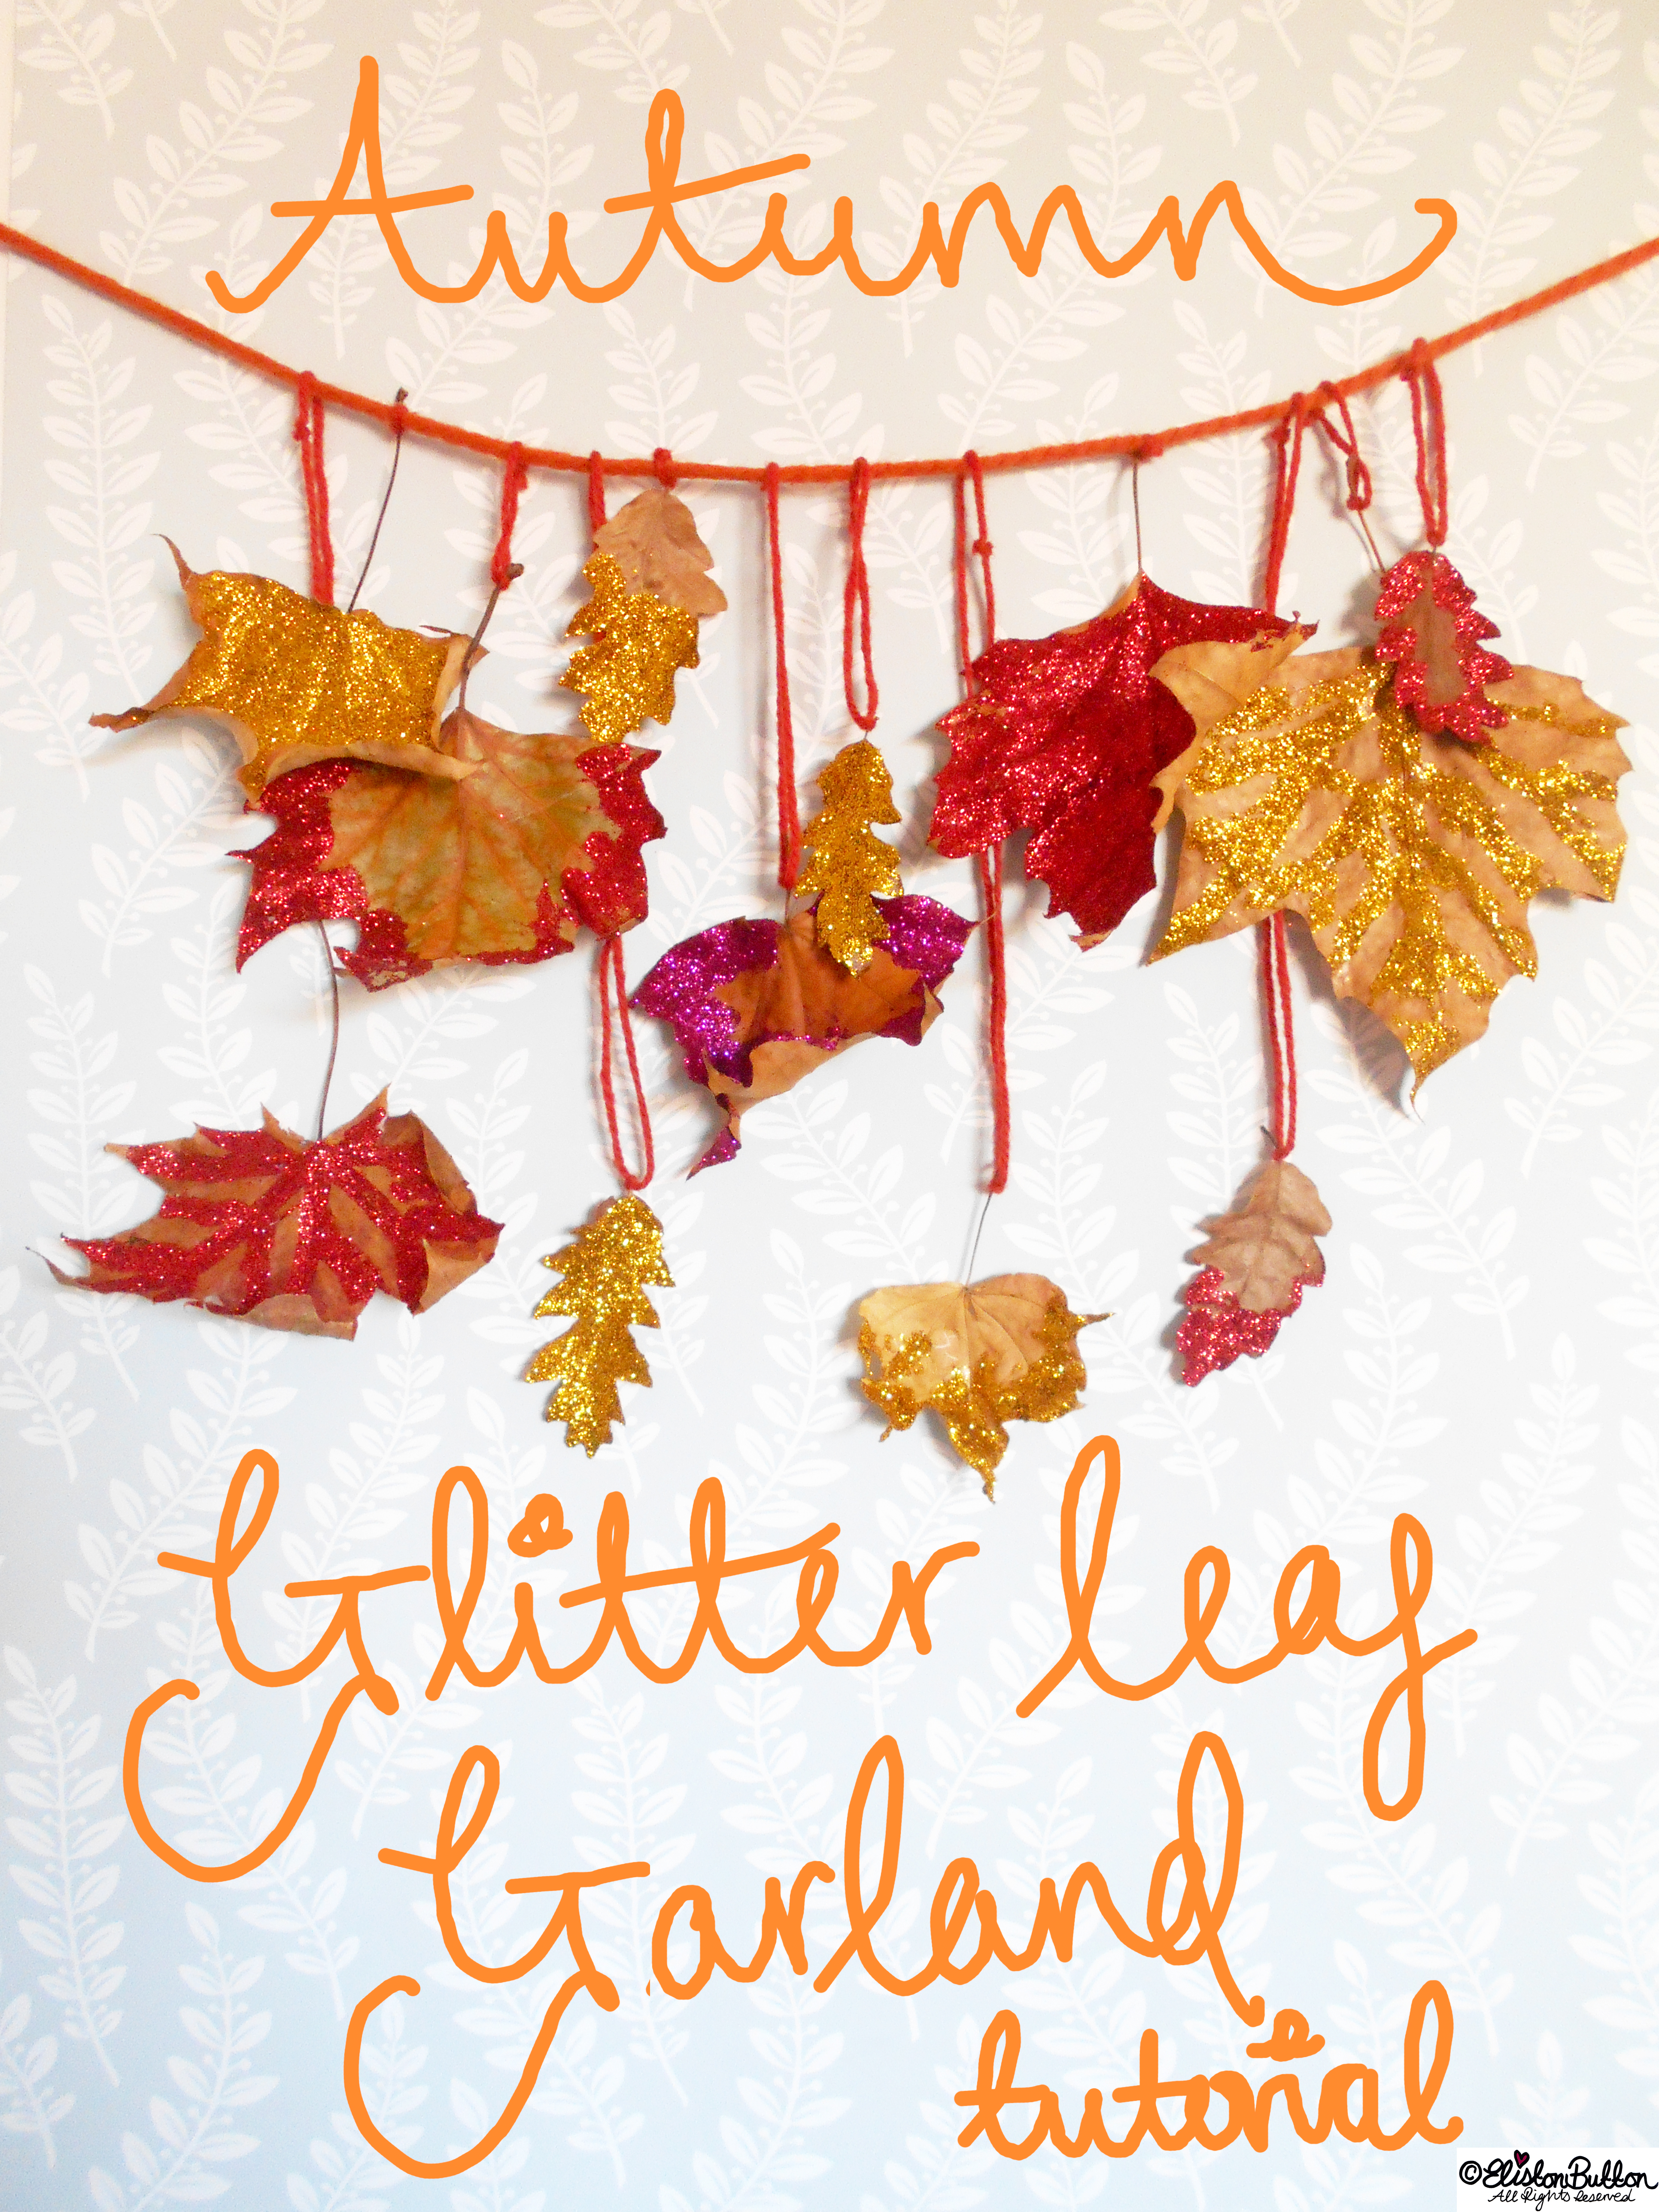 Autumn Glitter Leaf Garland Tutorial - Tutorial Tuesday – Autumn Glitter Leaf Garland at www.elistonbutton.com - Eliston Button - That Crafty Kid – Art, Design, Craft & Adventure.